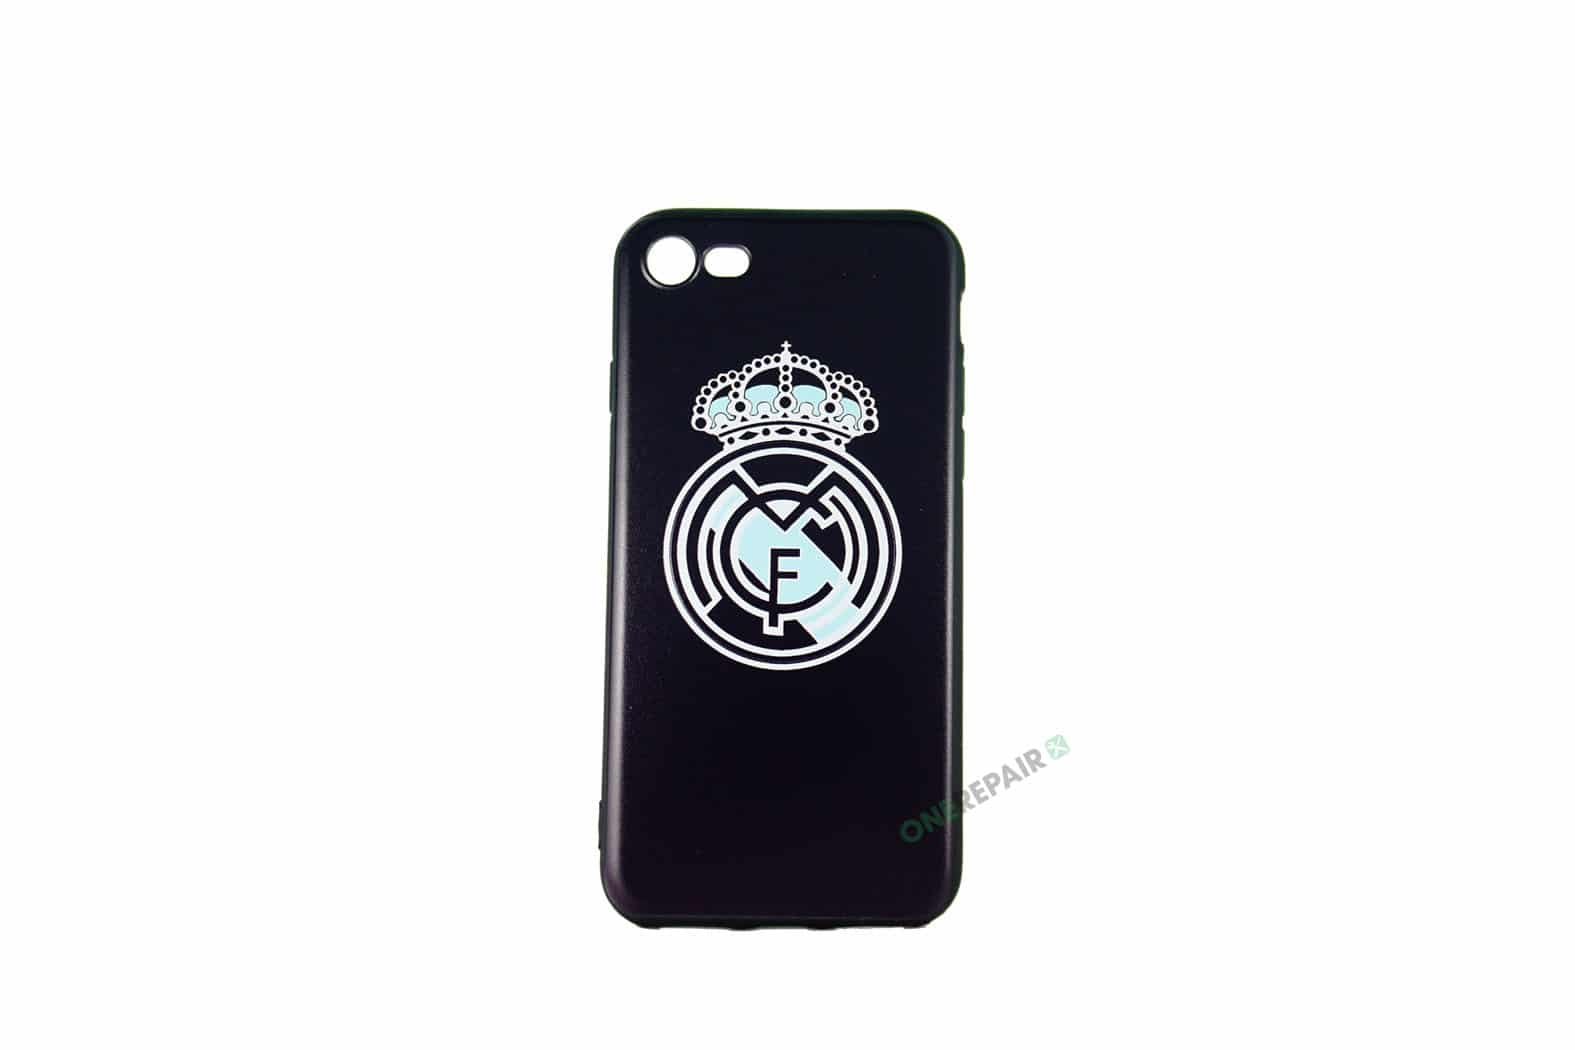 353773_iPhone_78_Fodbold_Real_Madrid_Lys_Sort_Cover_OneRepair_00001